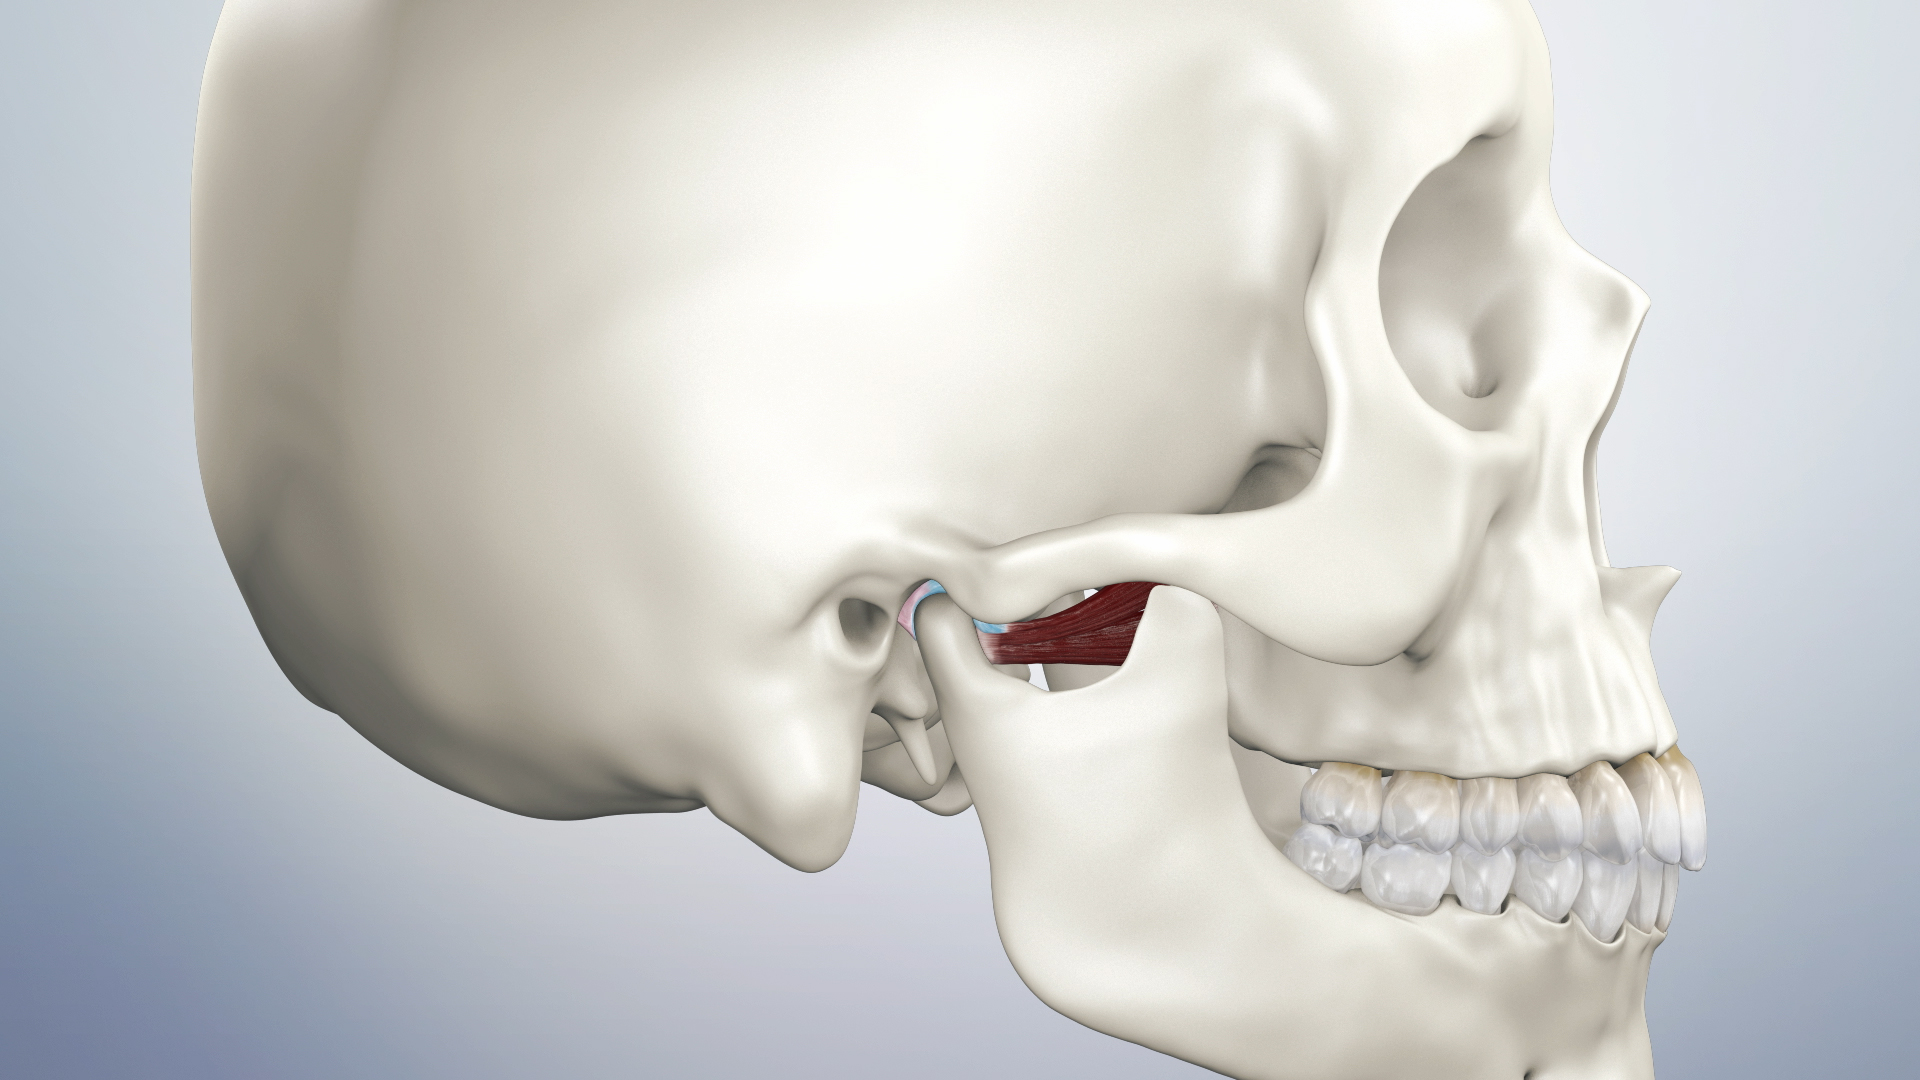 Thumbnail for a video on Temporomandibular Joint Disorder